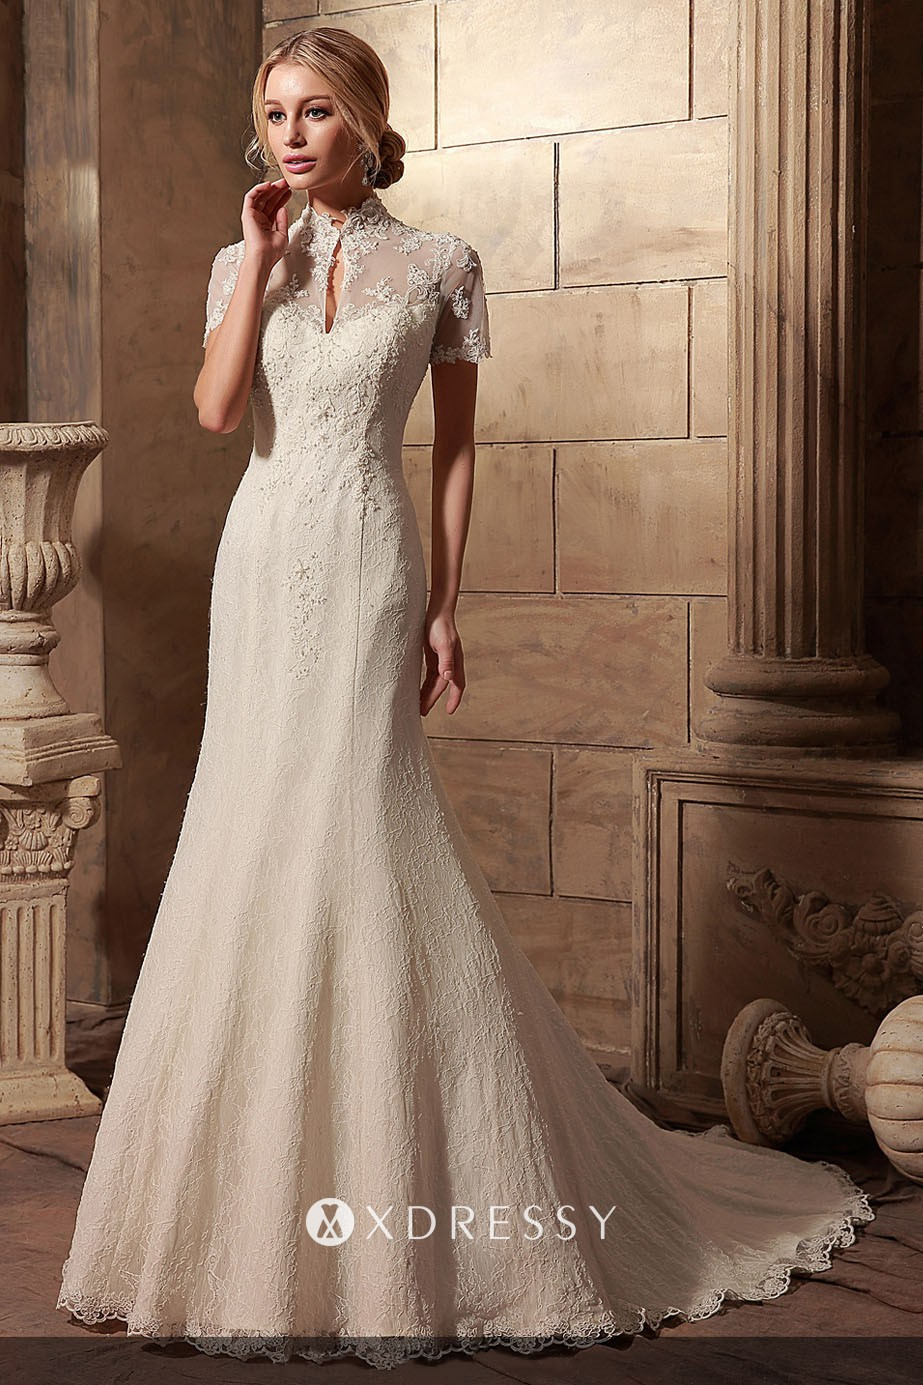 Illusion Lace High Neck Short Sleeve Wedding Dress Xdressy